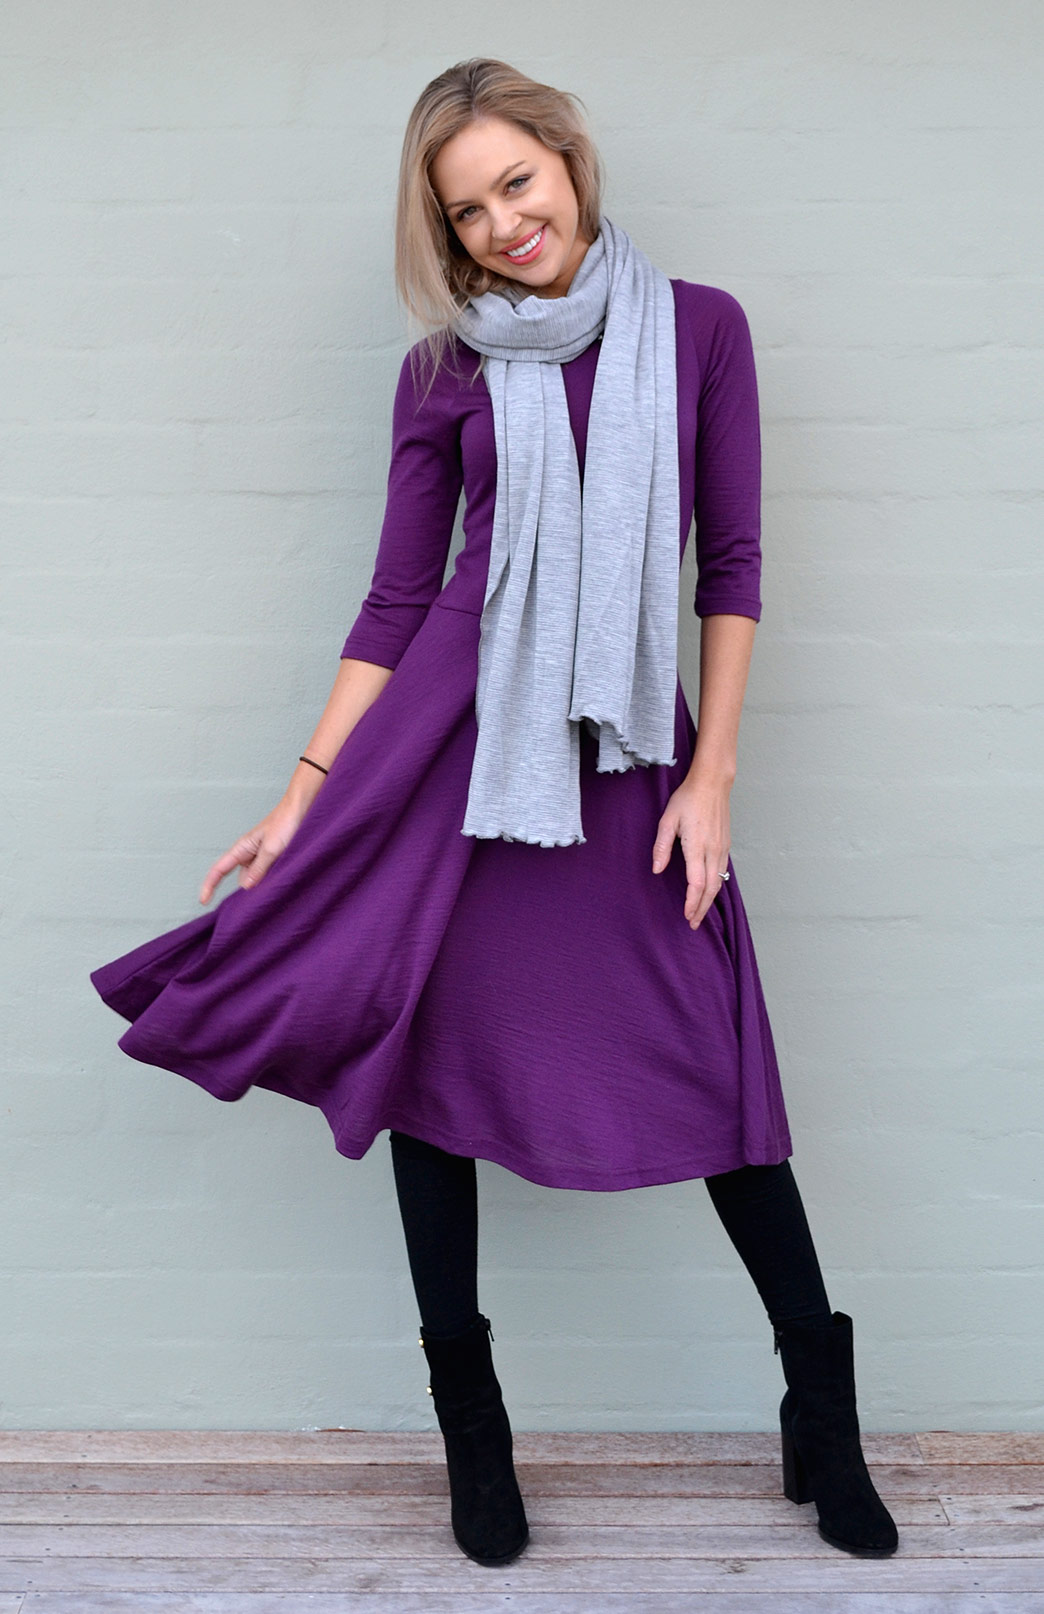 Mary Dress - Women's Stunning Purple Merino Wool Classic Dress - Smitten Merino Tasmania Australia